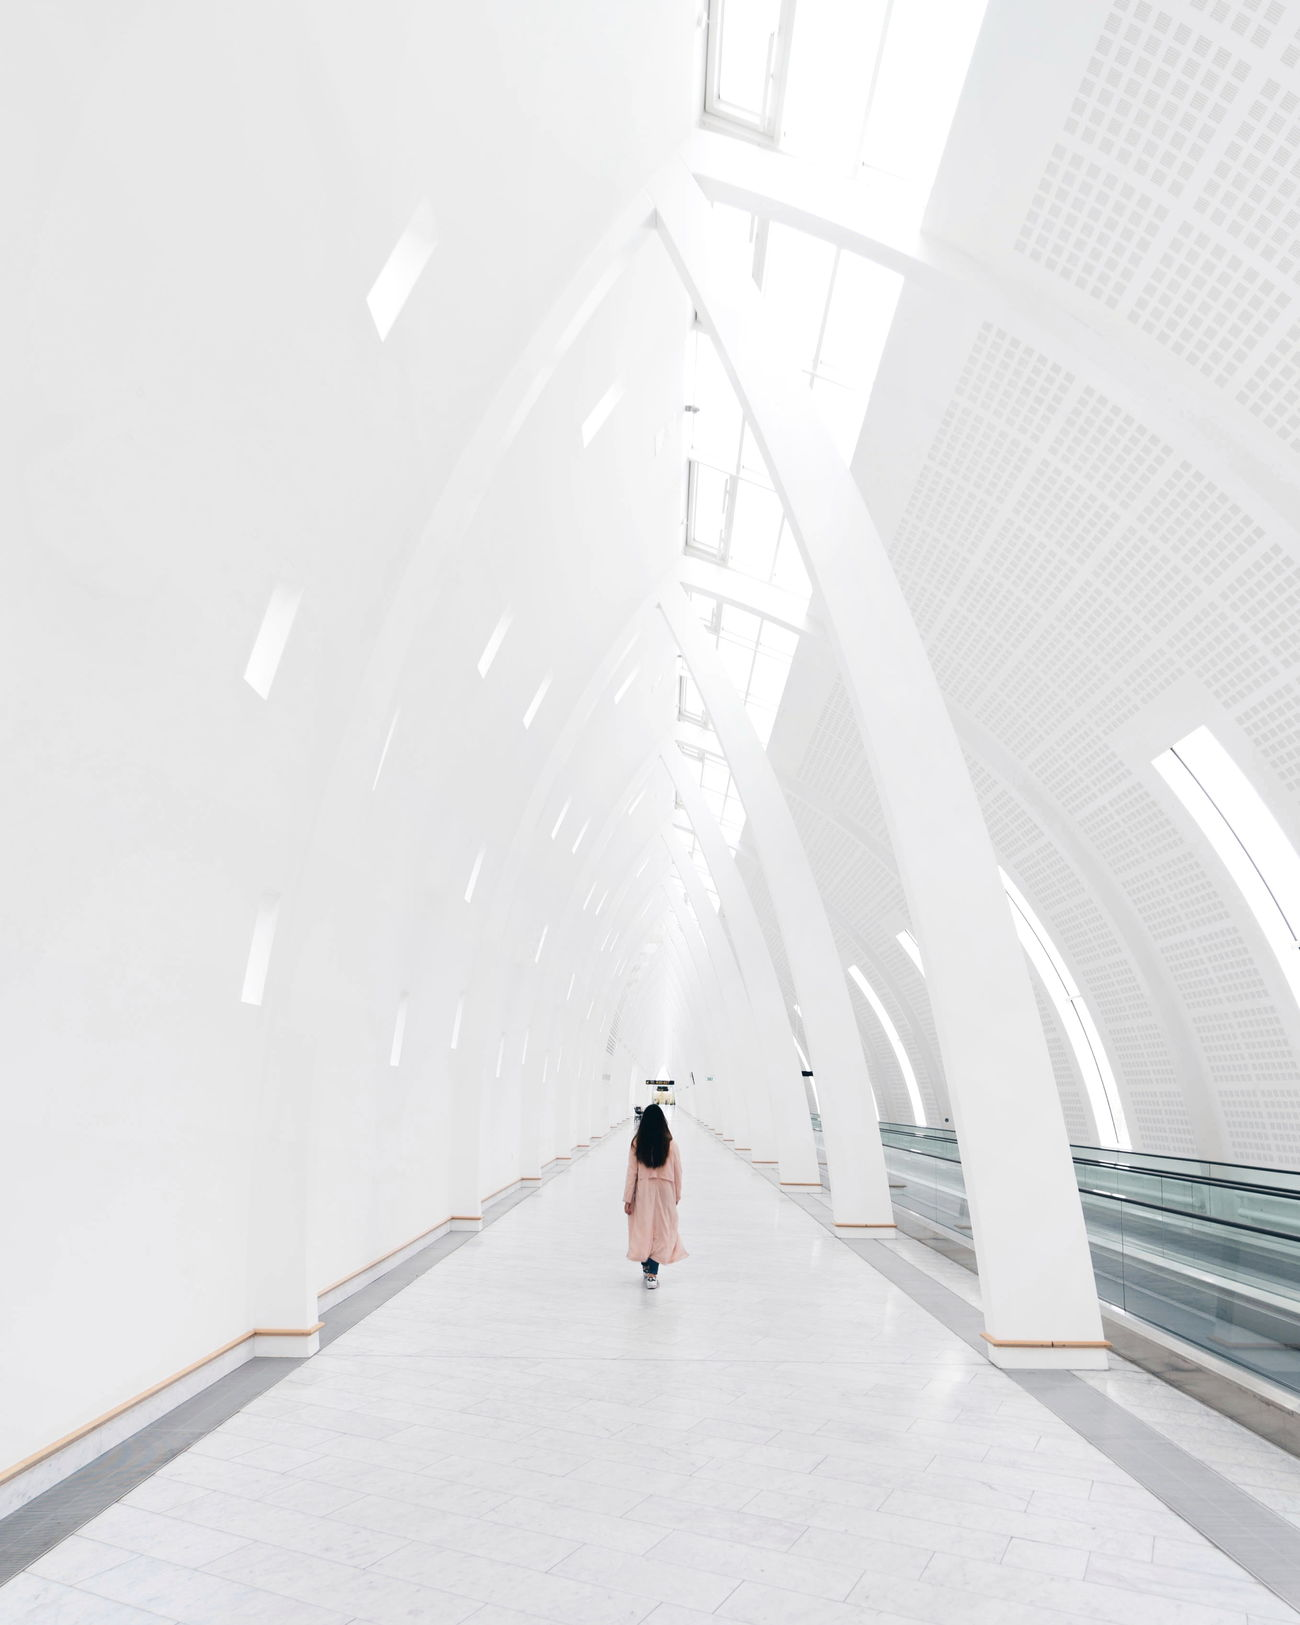 architecture, one person, real people, built structure, indoors